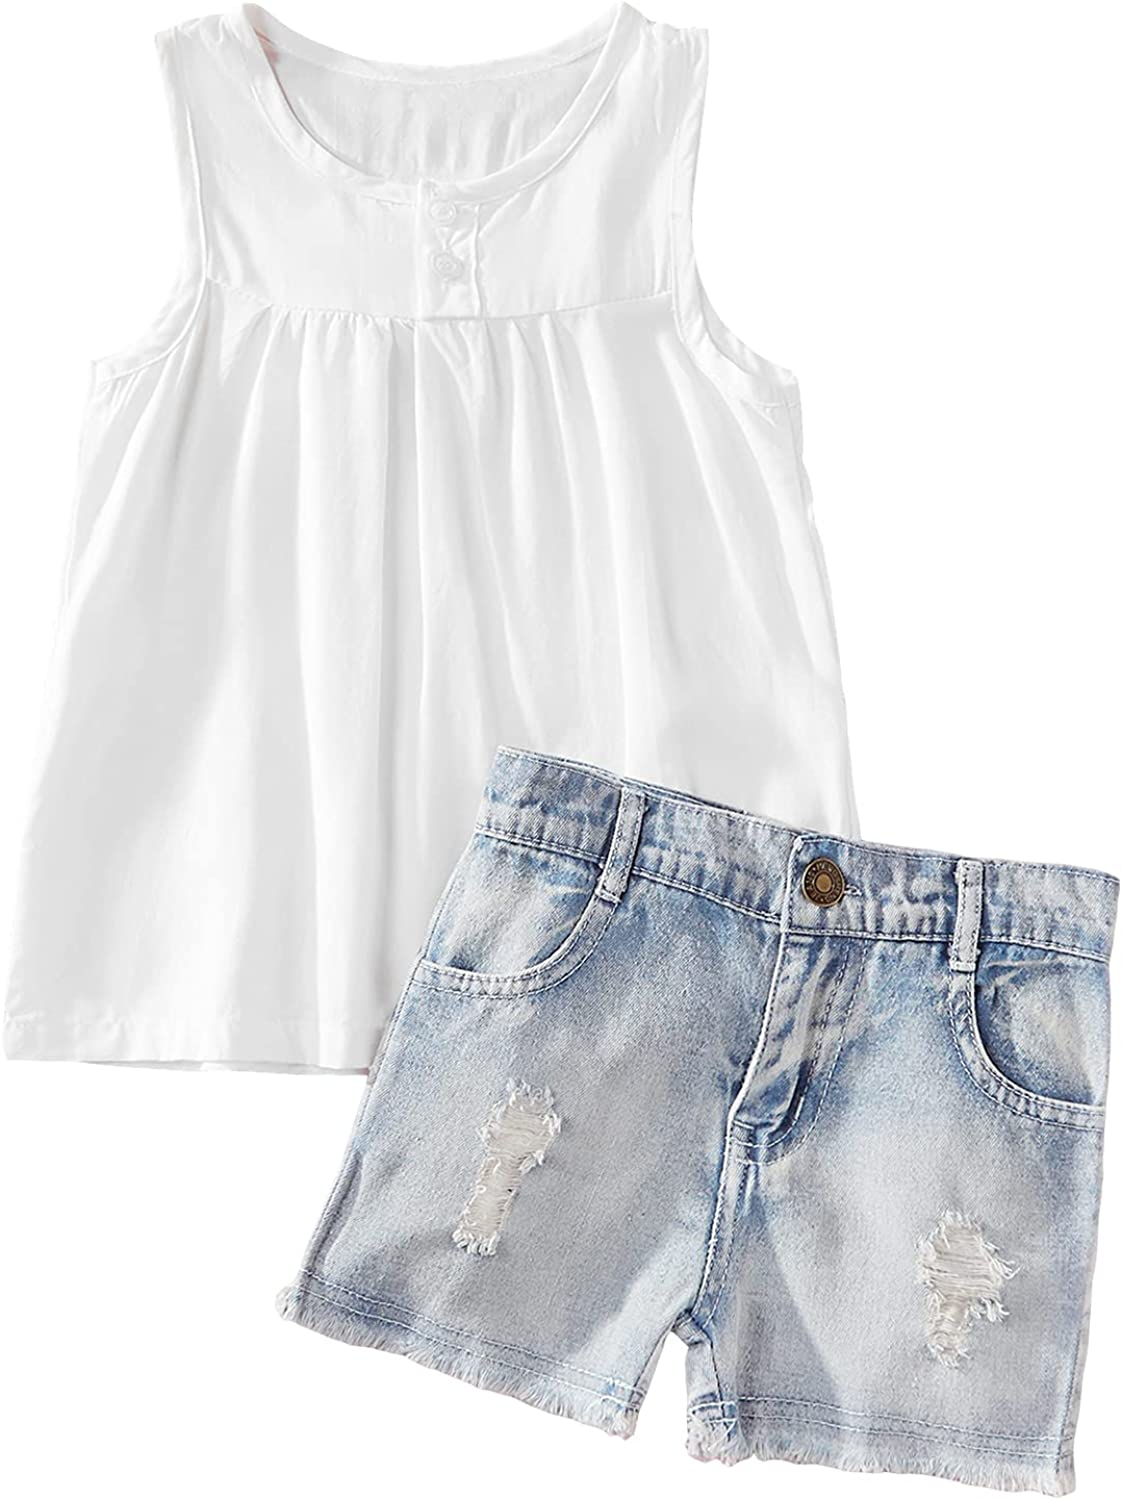 Toddler Baby Girls Clothes Summer Sleeve Kids Slee Mail order cheap Short Outfits New arrival